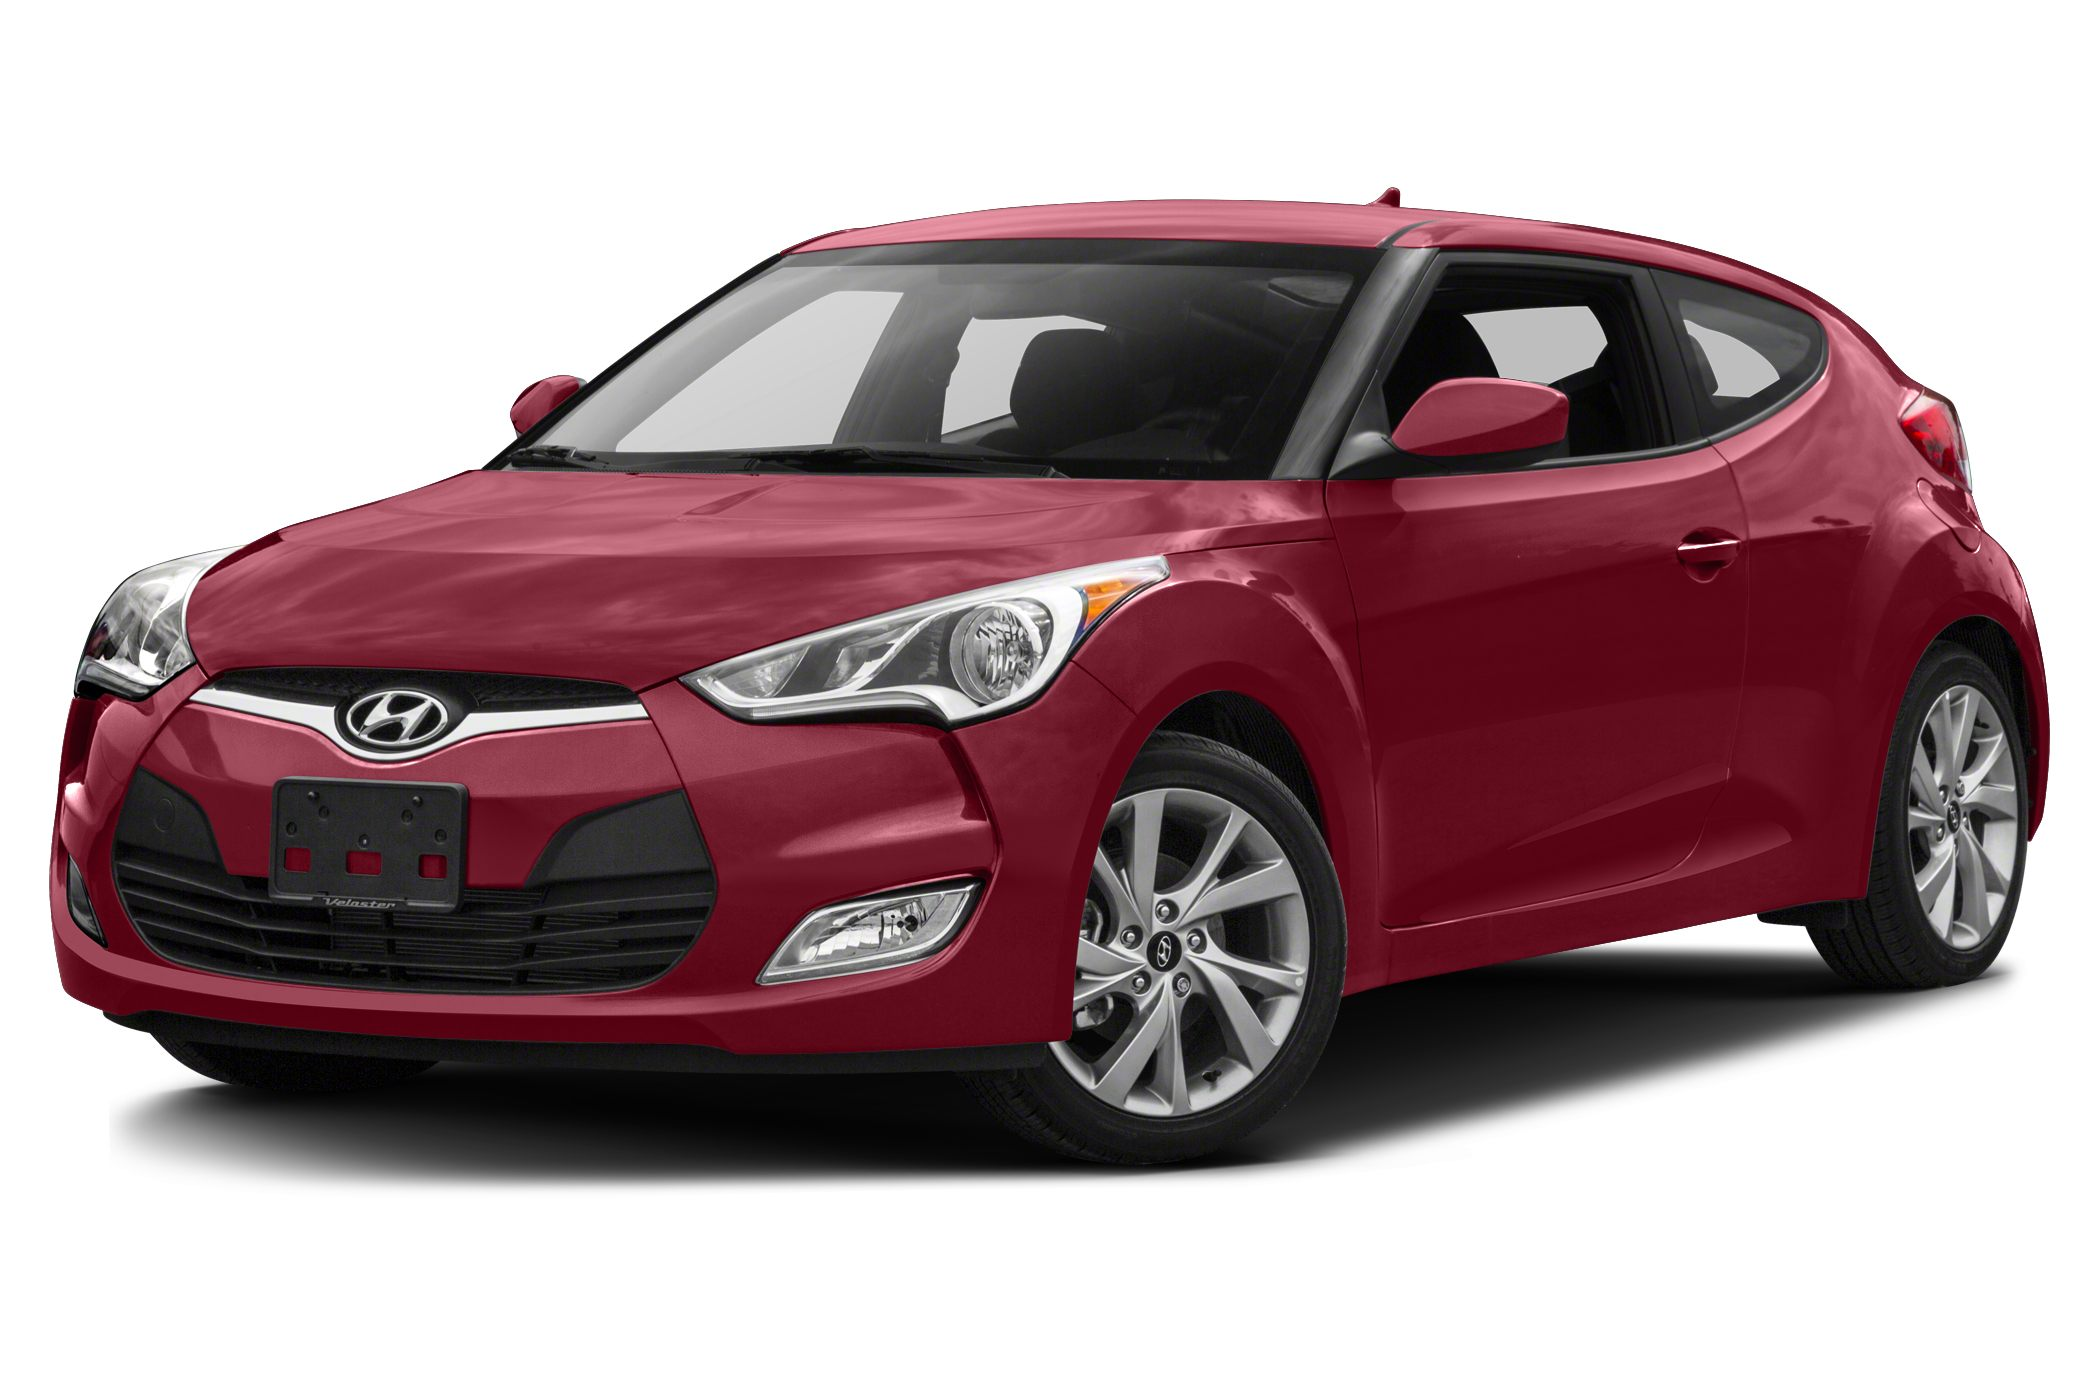 Hyundai Canada Incentives for the new 2018 Hyundai Veloster Coupe and Veloster Turbo in Milton, Toronto, and the GTA